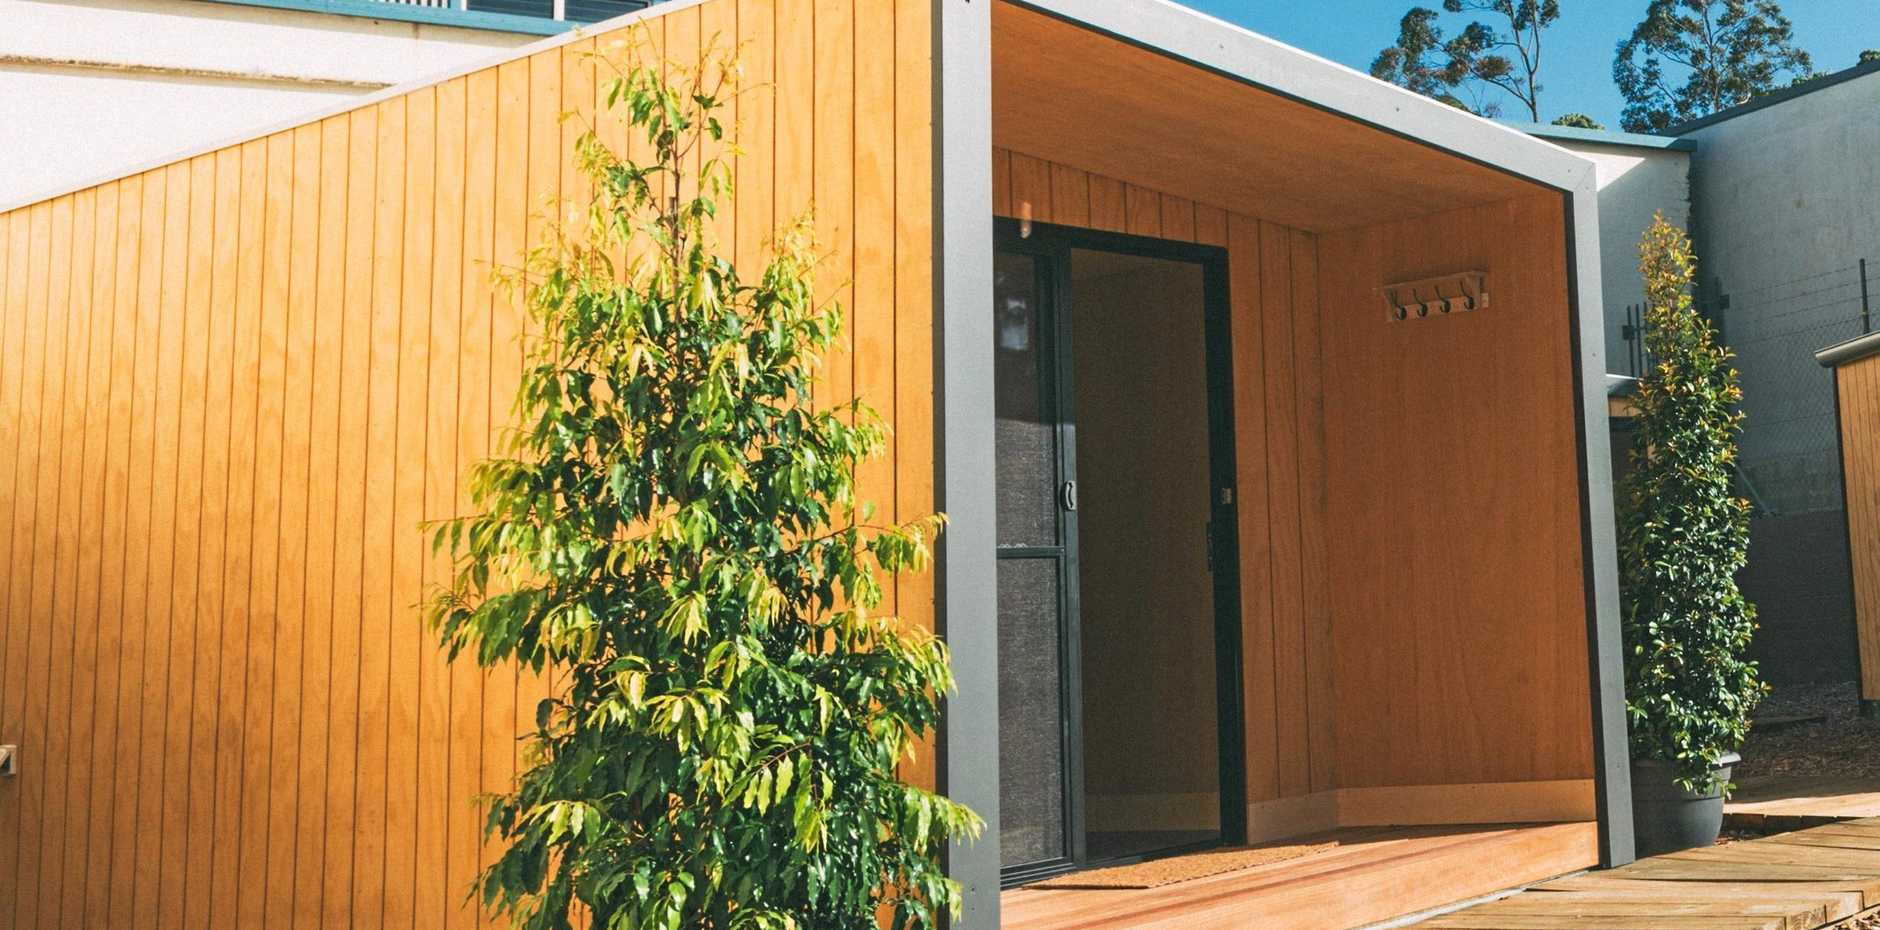 New Bangalow-based business Humpy Co. can take the stress out of renovations with their portable, mountable/demountable flat packs for extra space.